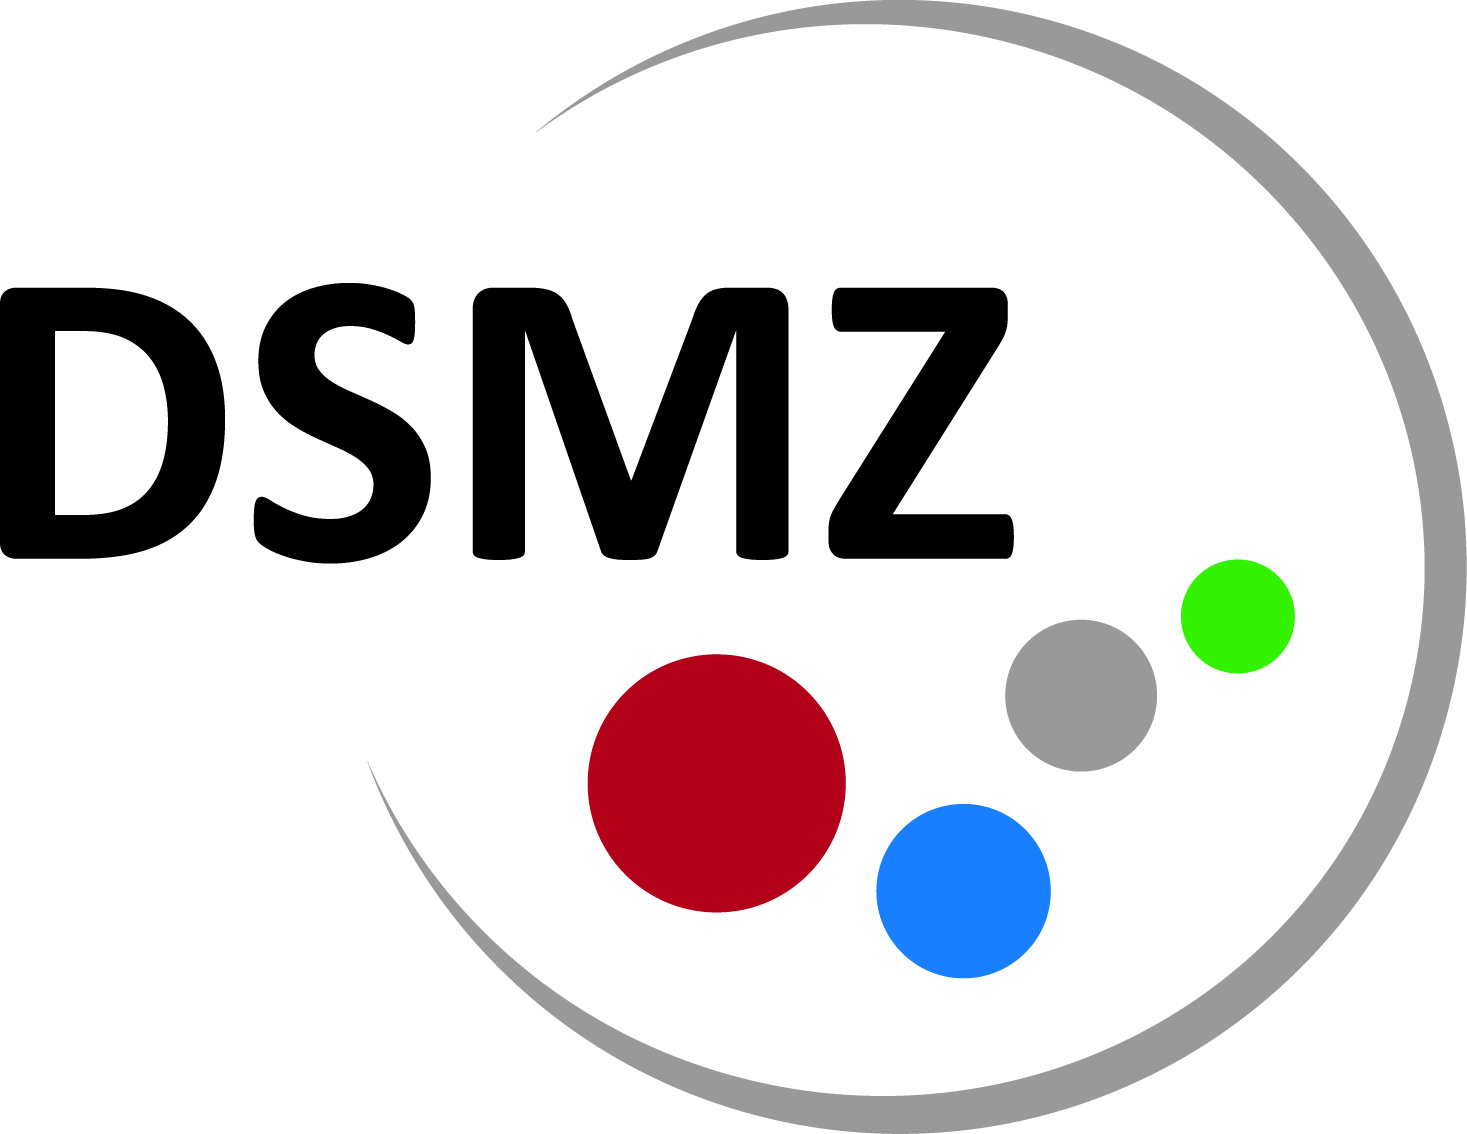 DSMZ-German collection of phage